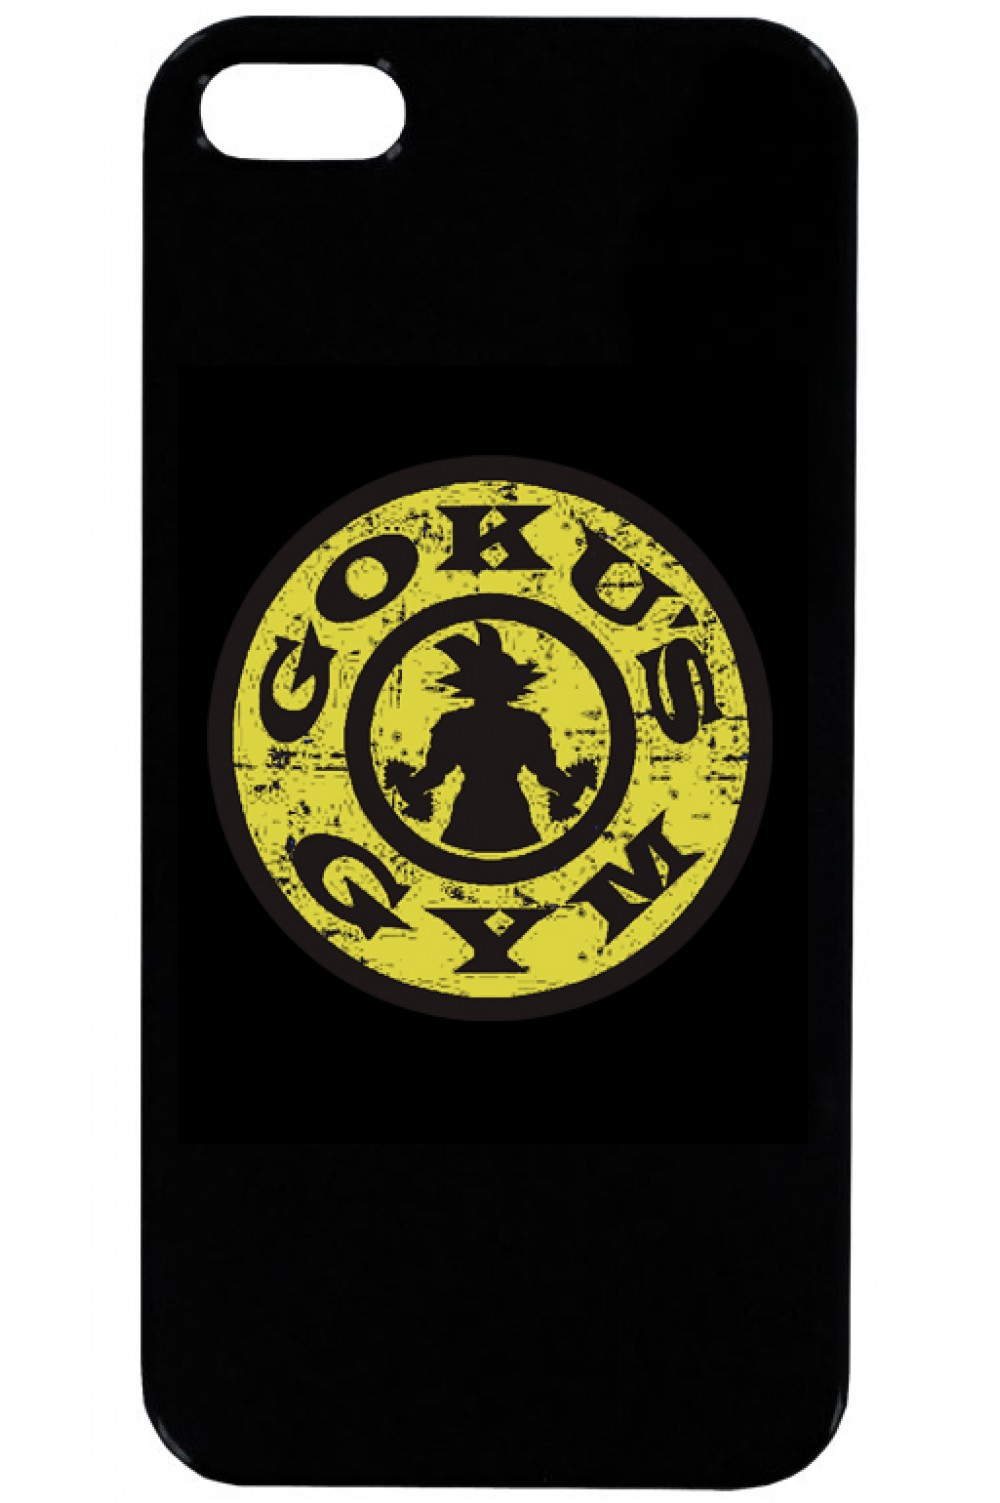 Phone Case - Gokus Gym